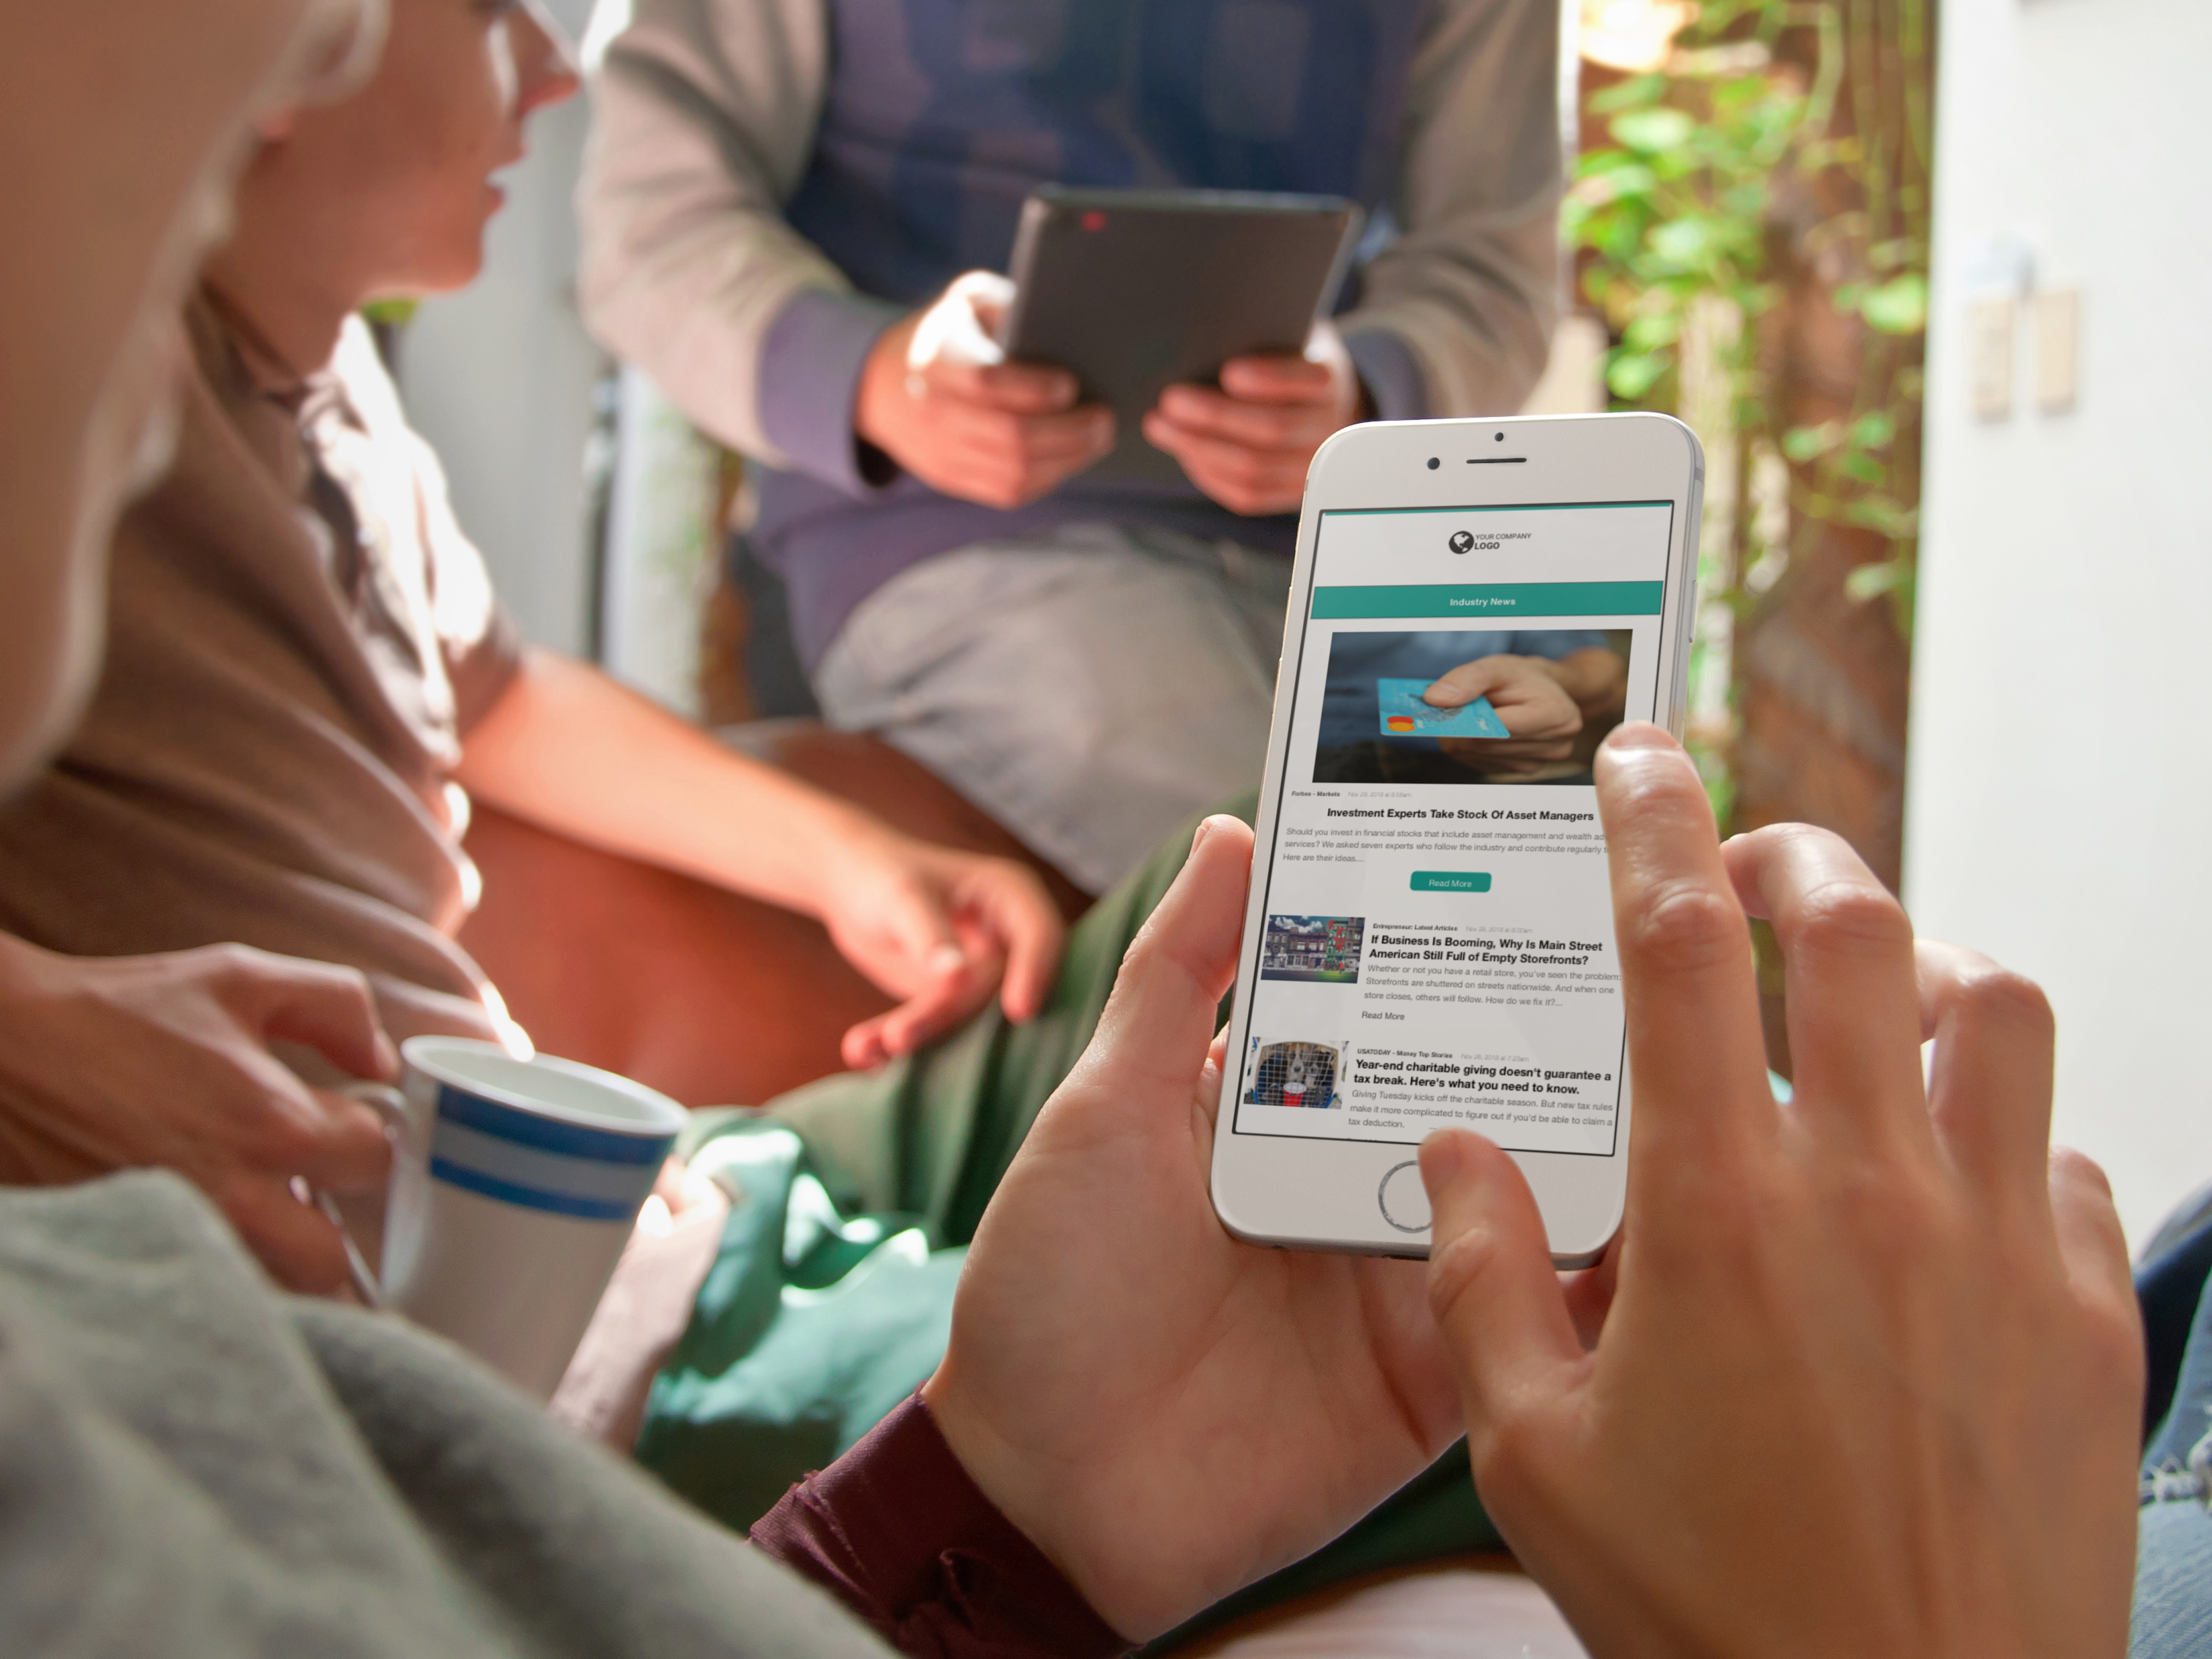 Your employees can view your internal content in any setting